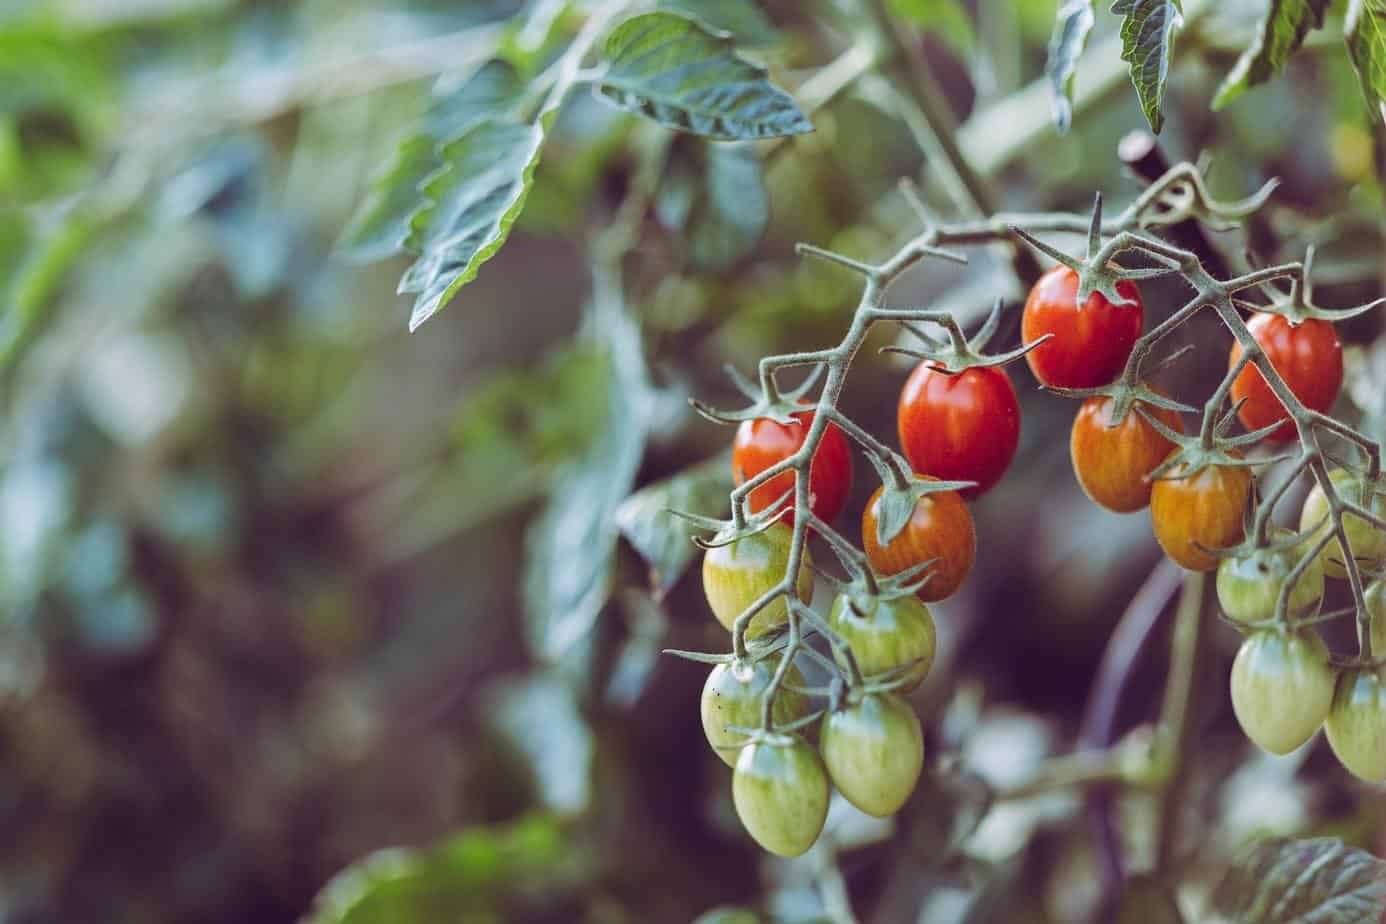 growing tomatoes disease-free